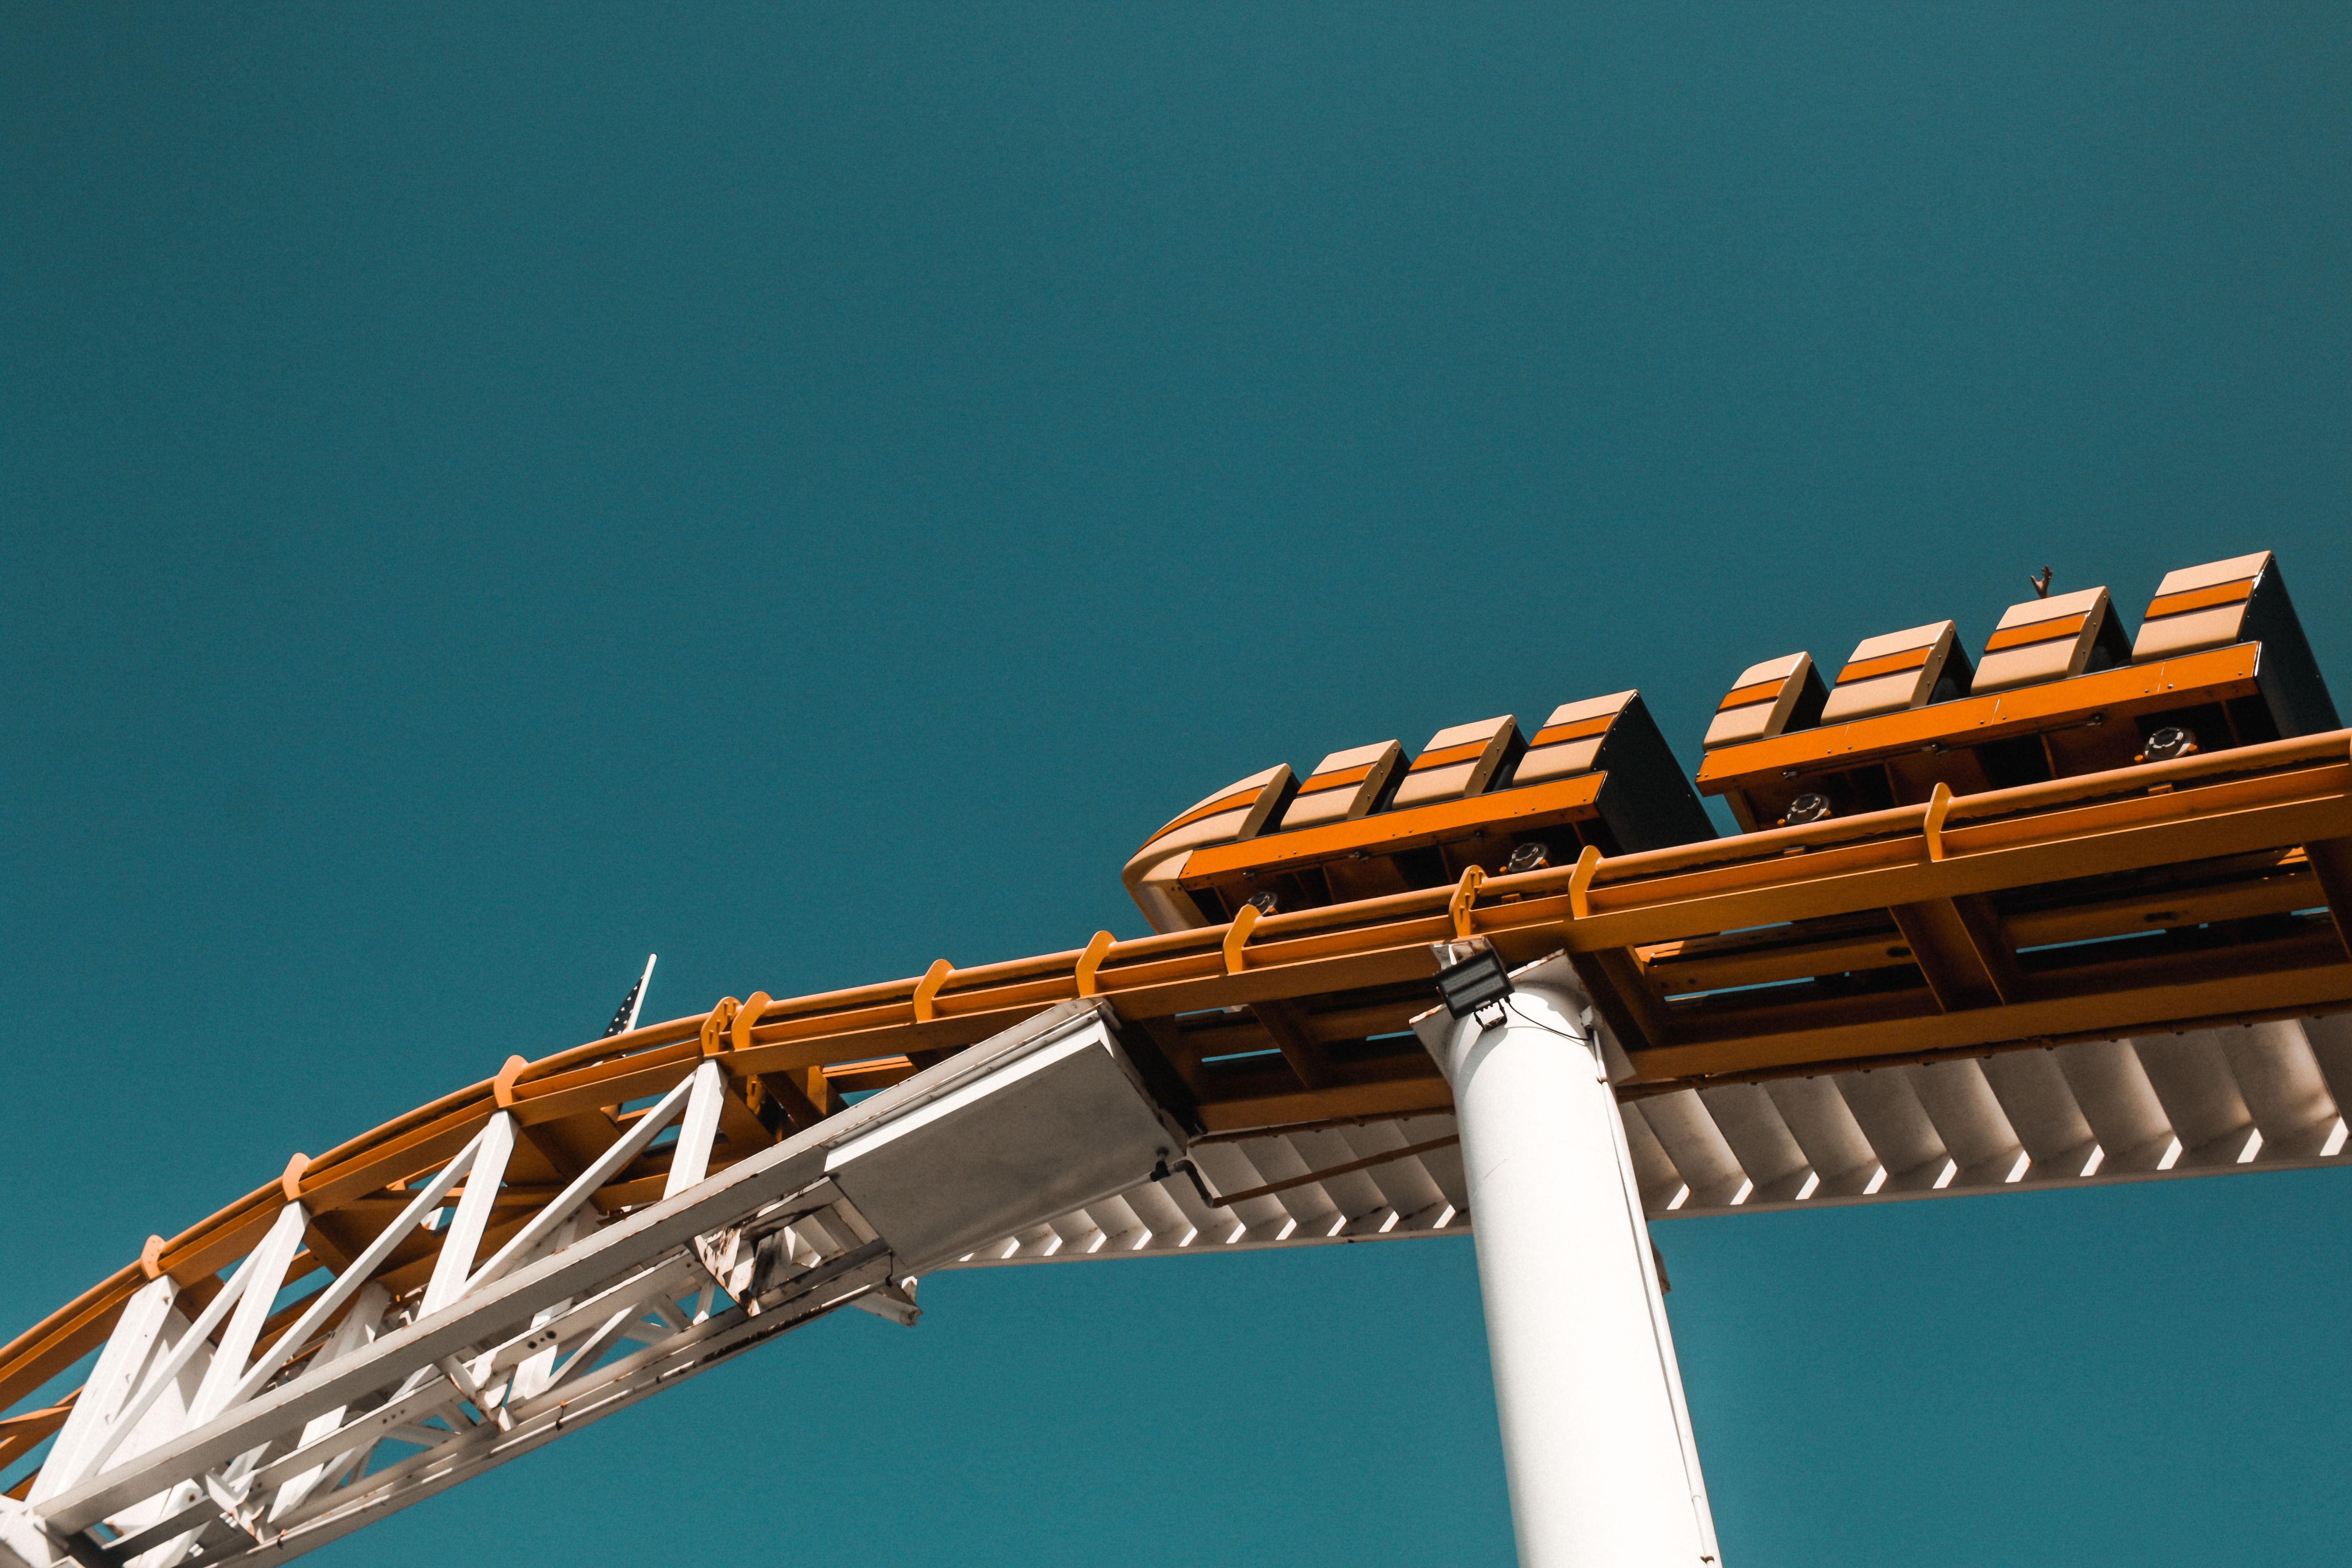 worm's-eye view of orange roller coaster